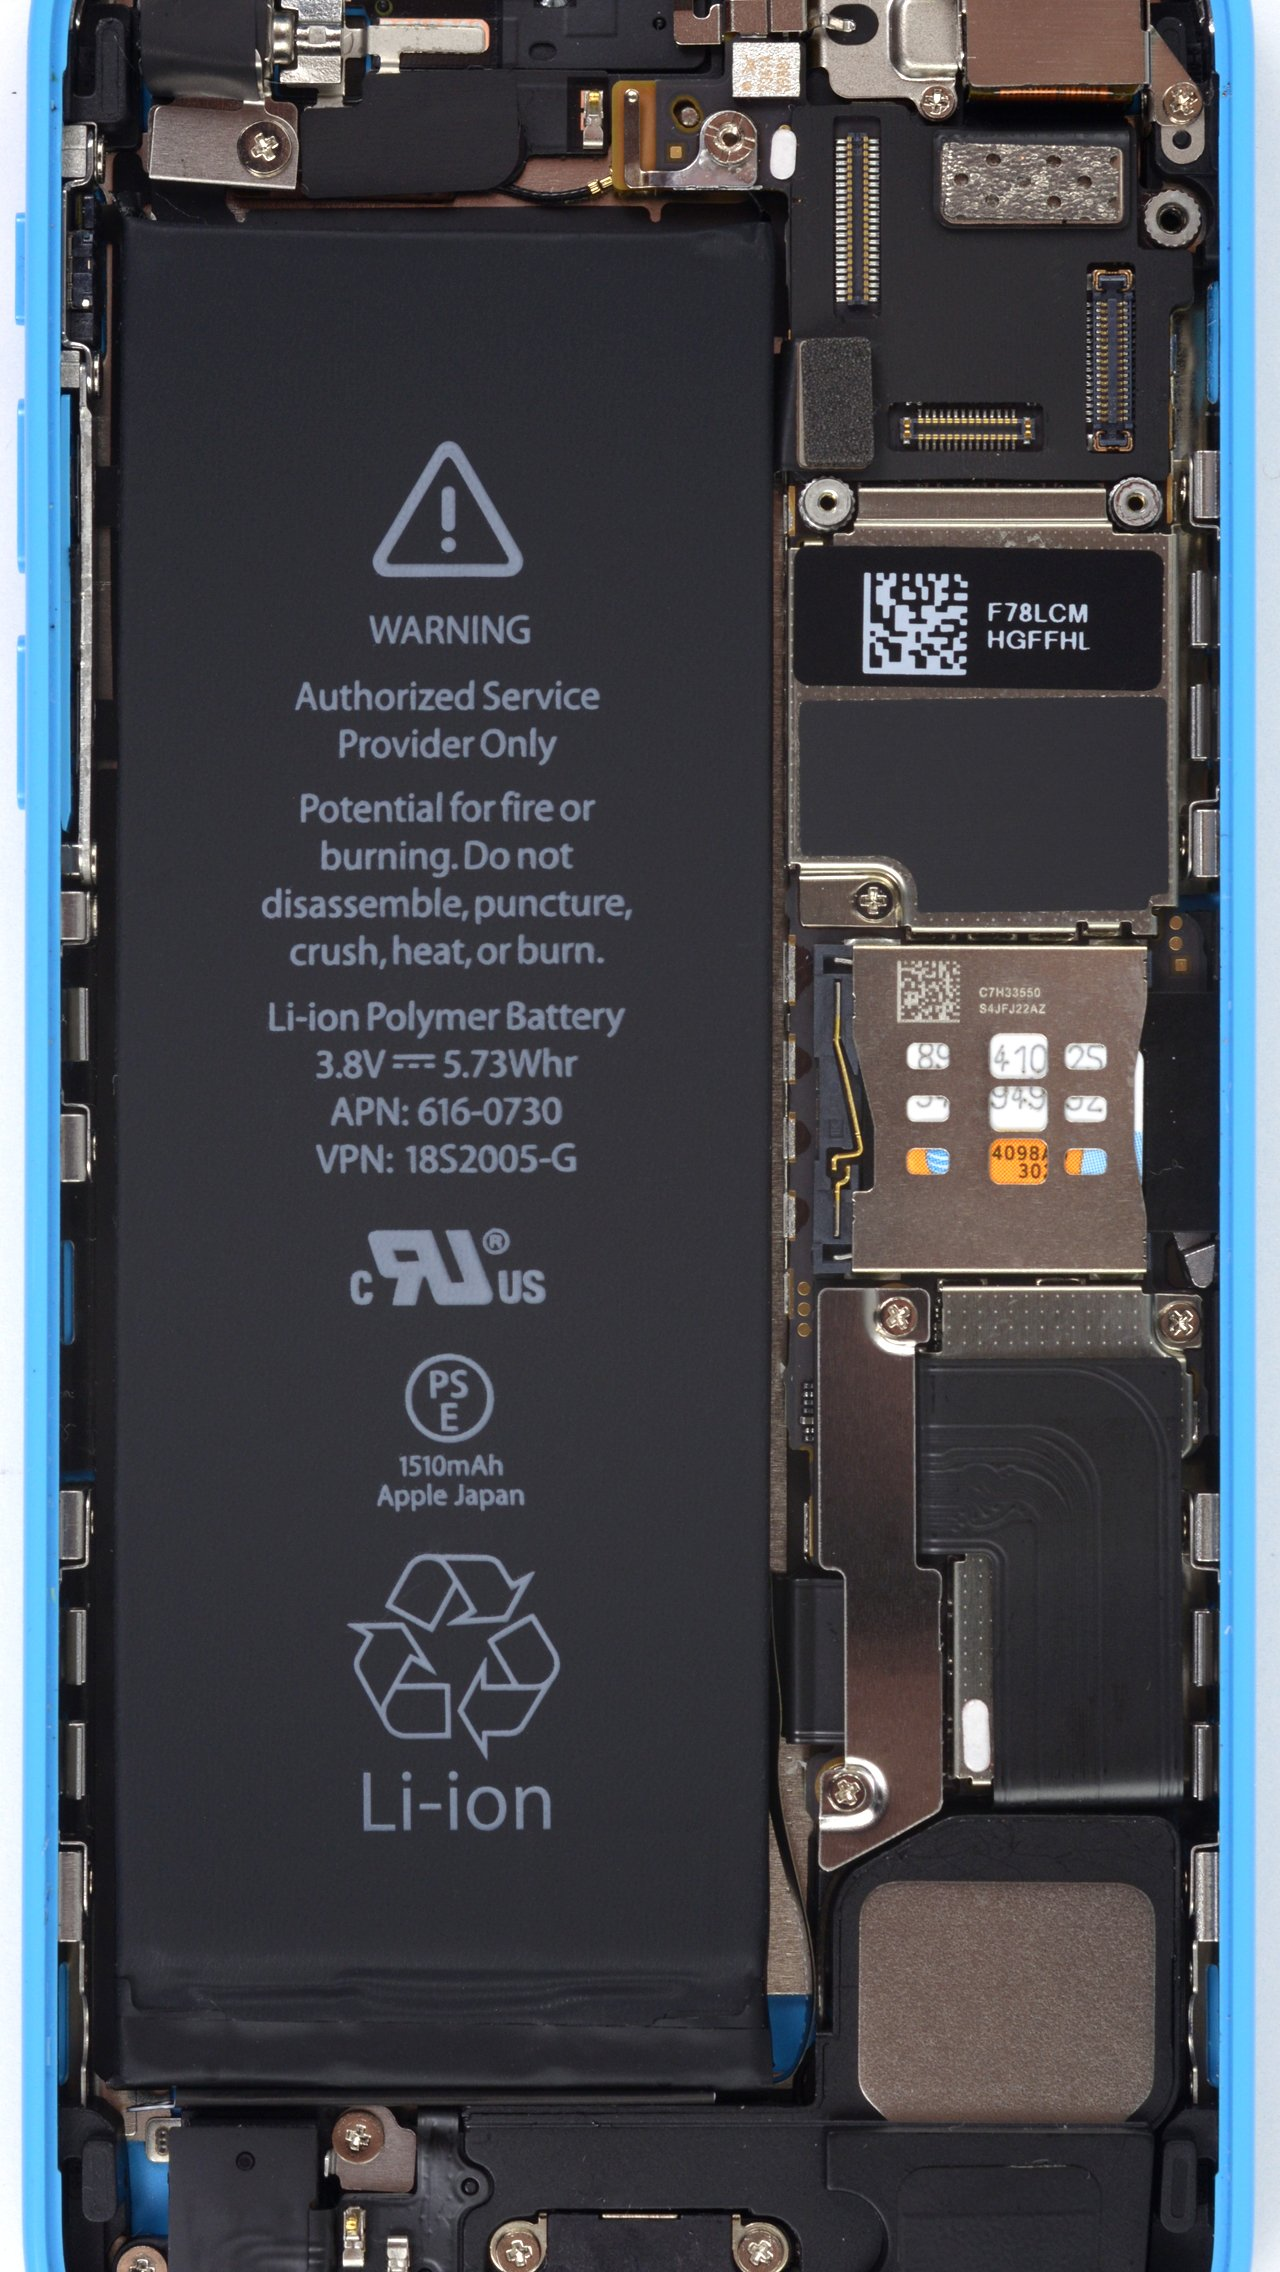 iPhone 21s/c and iMac Internals Wallpapers   iFixit